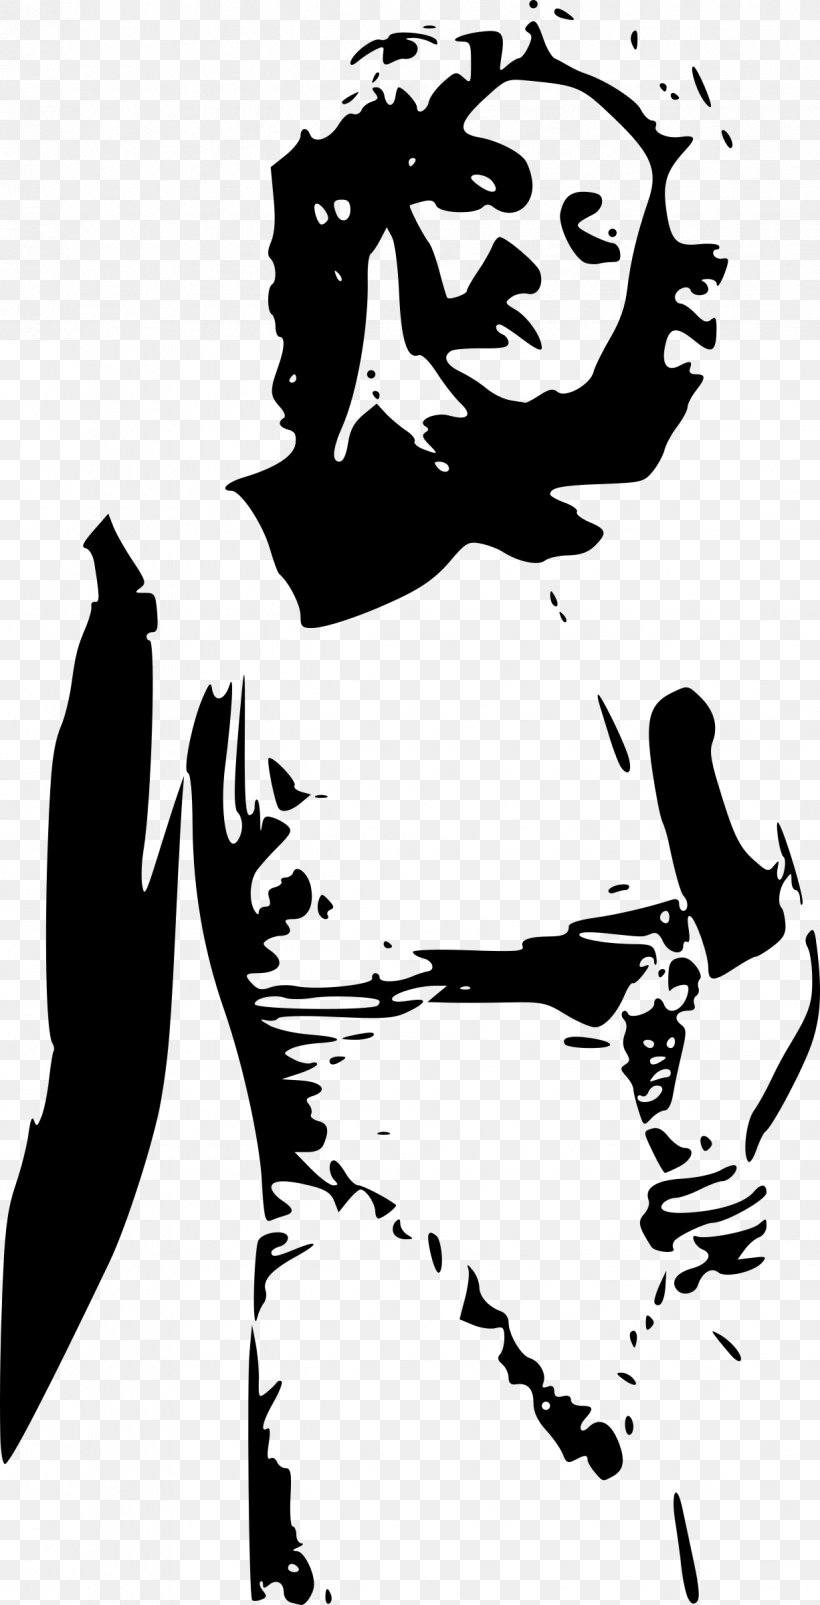 The Taming Of The Shrew Silhouette Queen Of Hearts Clip Art.